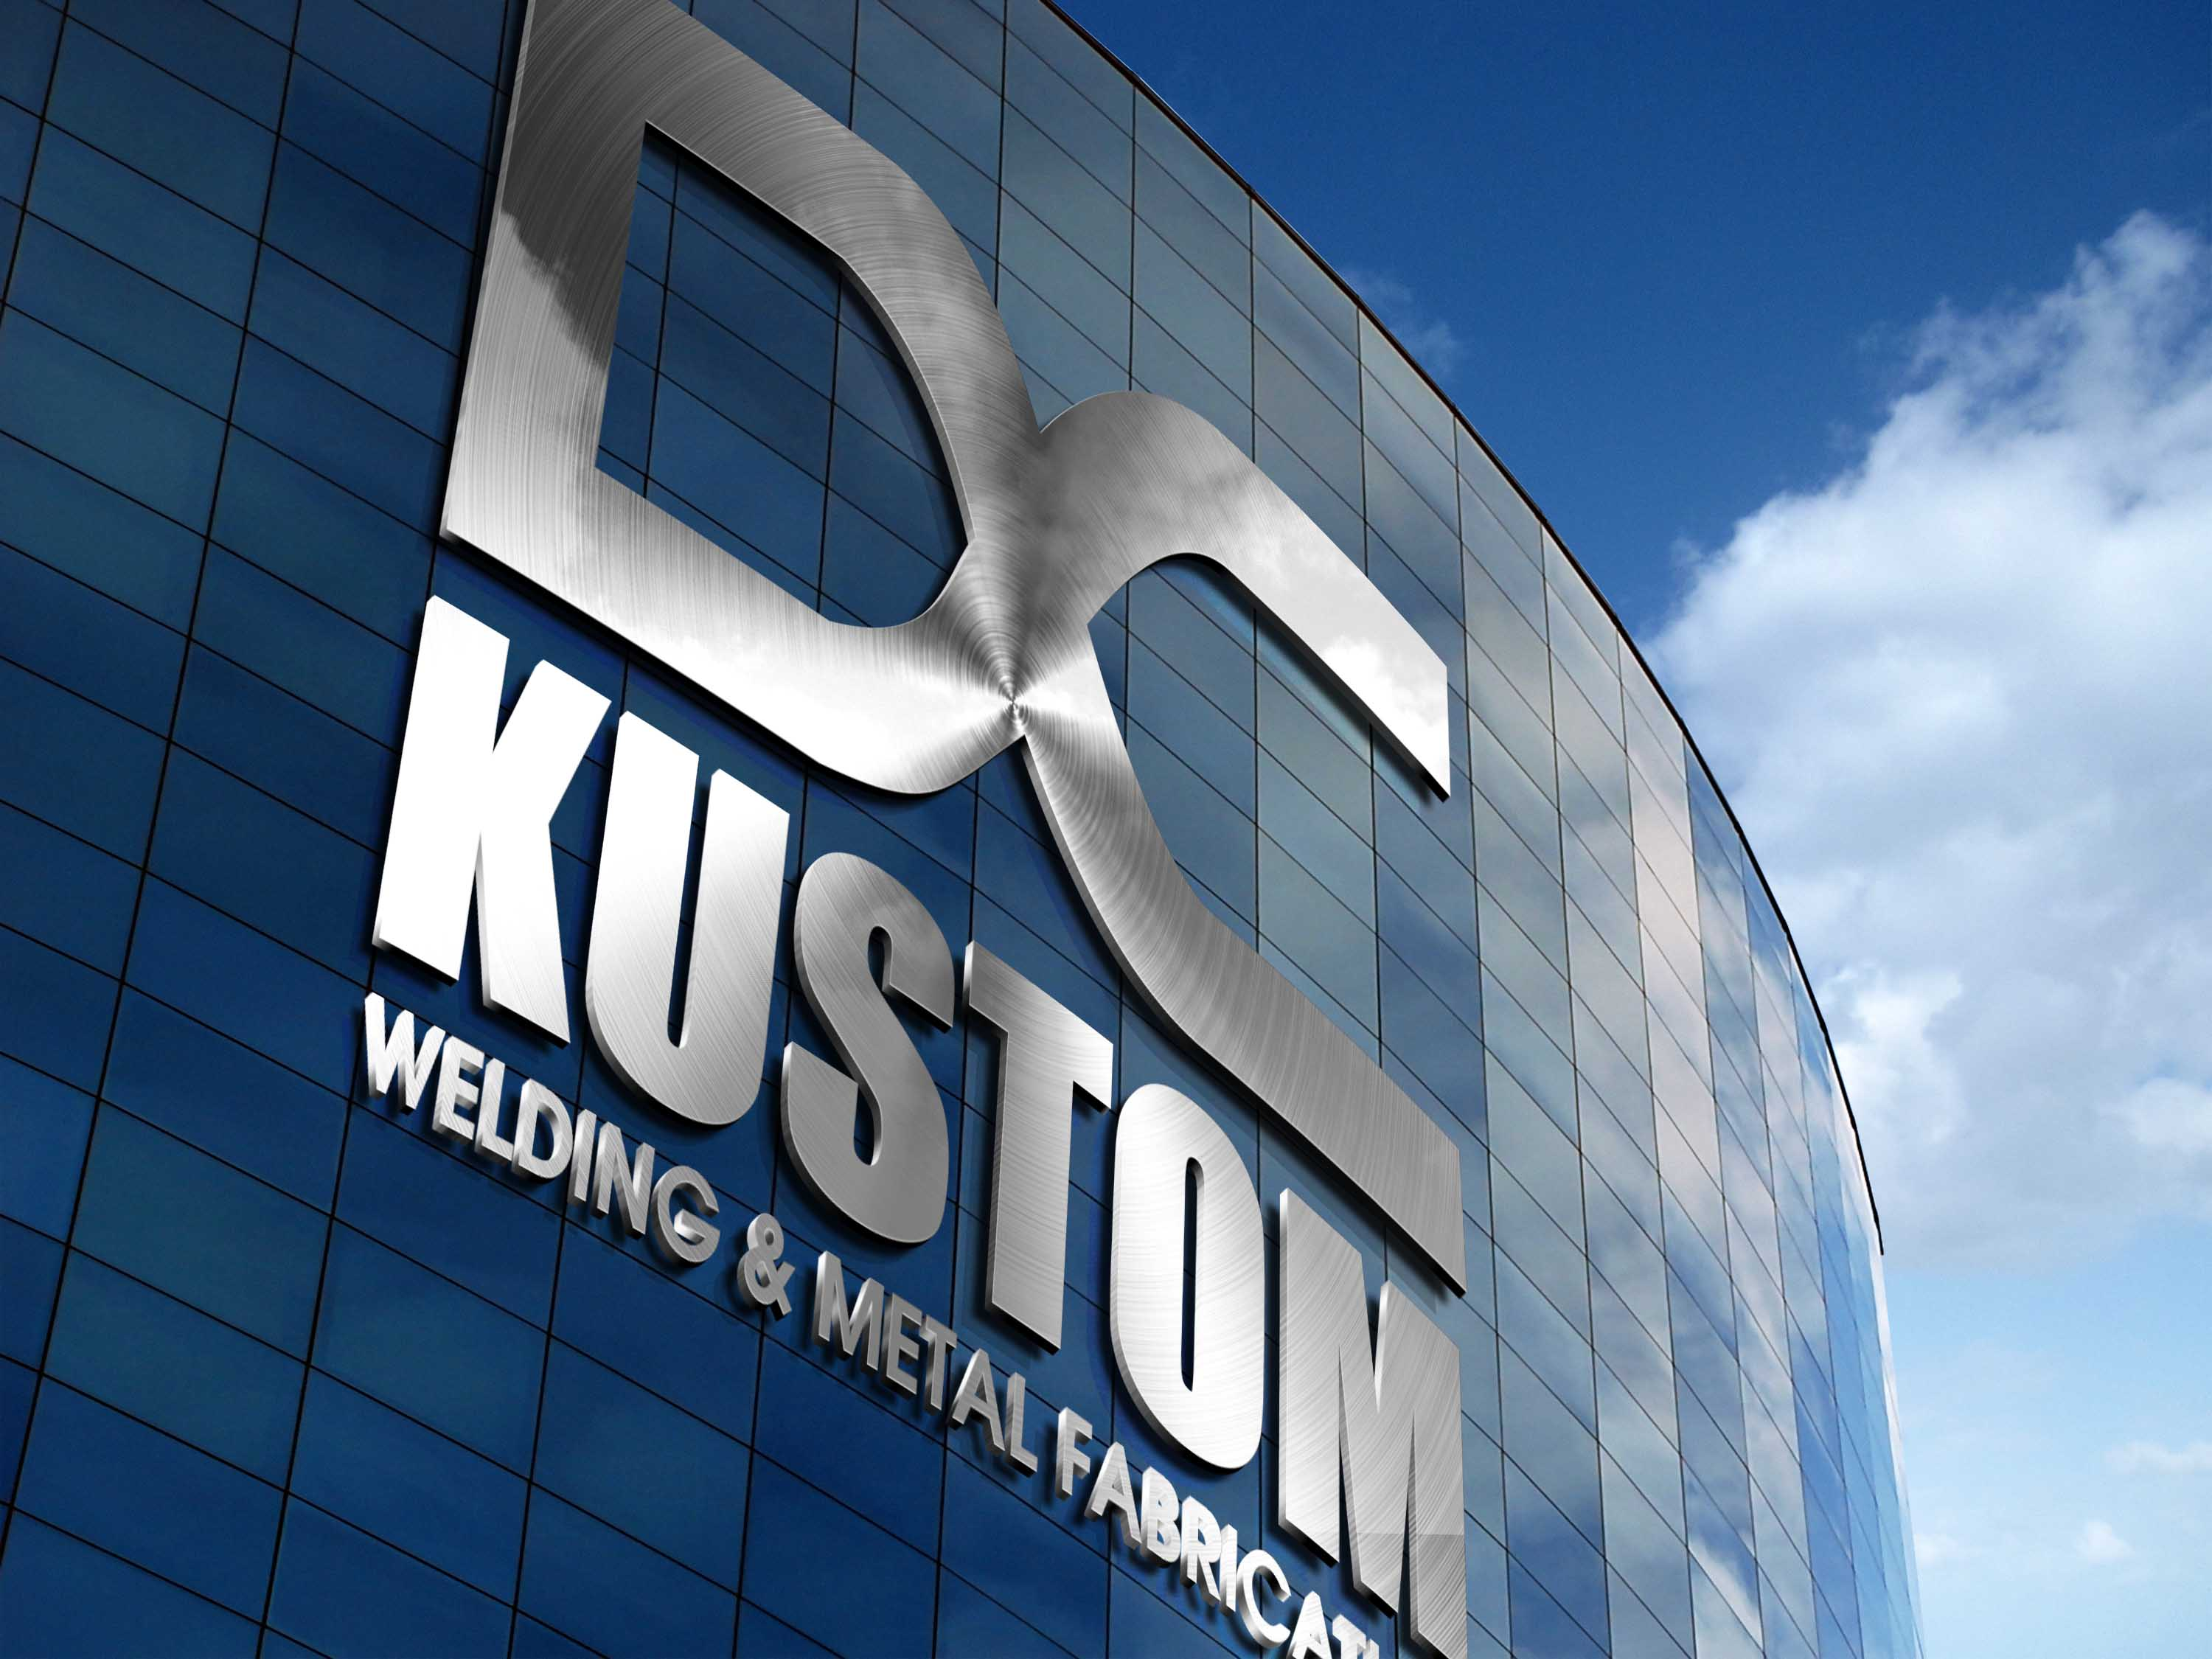 Logo Design by Private User - Entry No. 101 in the Logo Design Contest Imaginative Logo Design for DC KUSTOM WELDING & METAL FABRICATION.